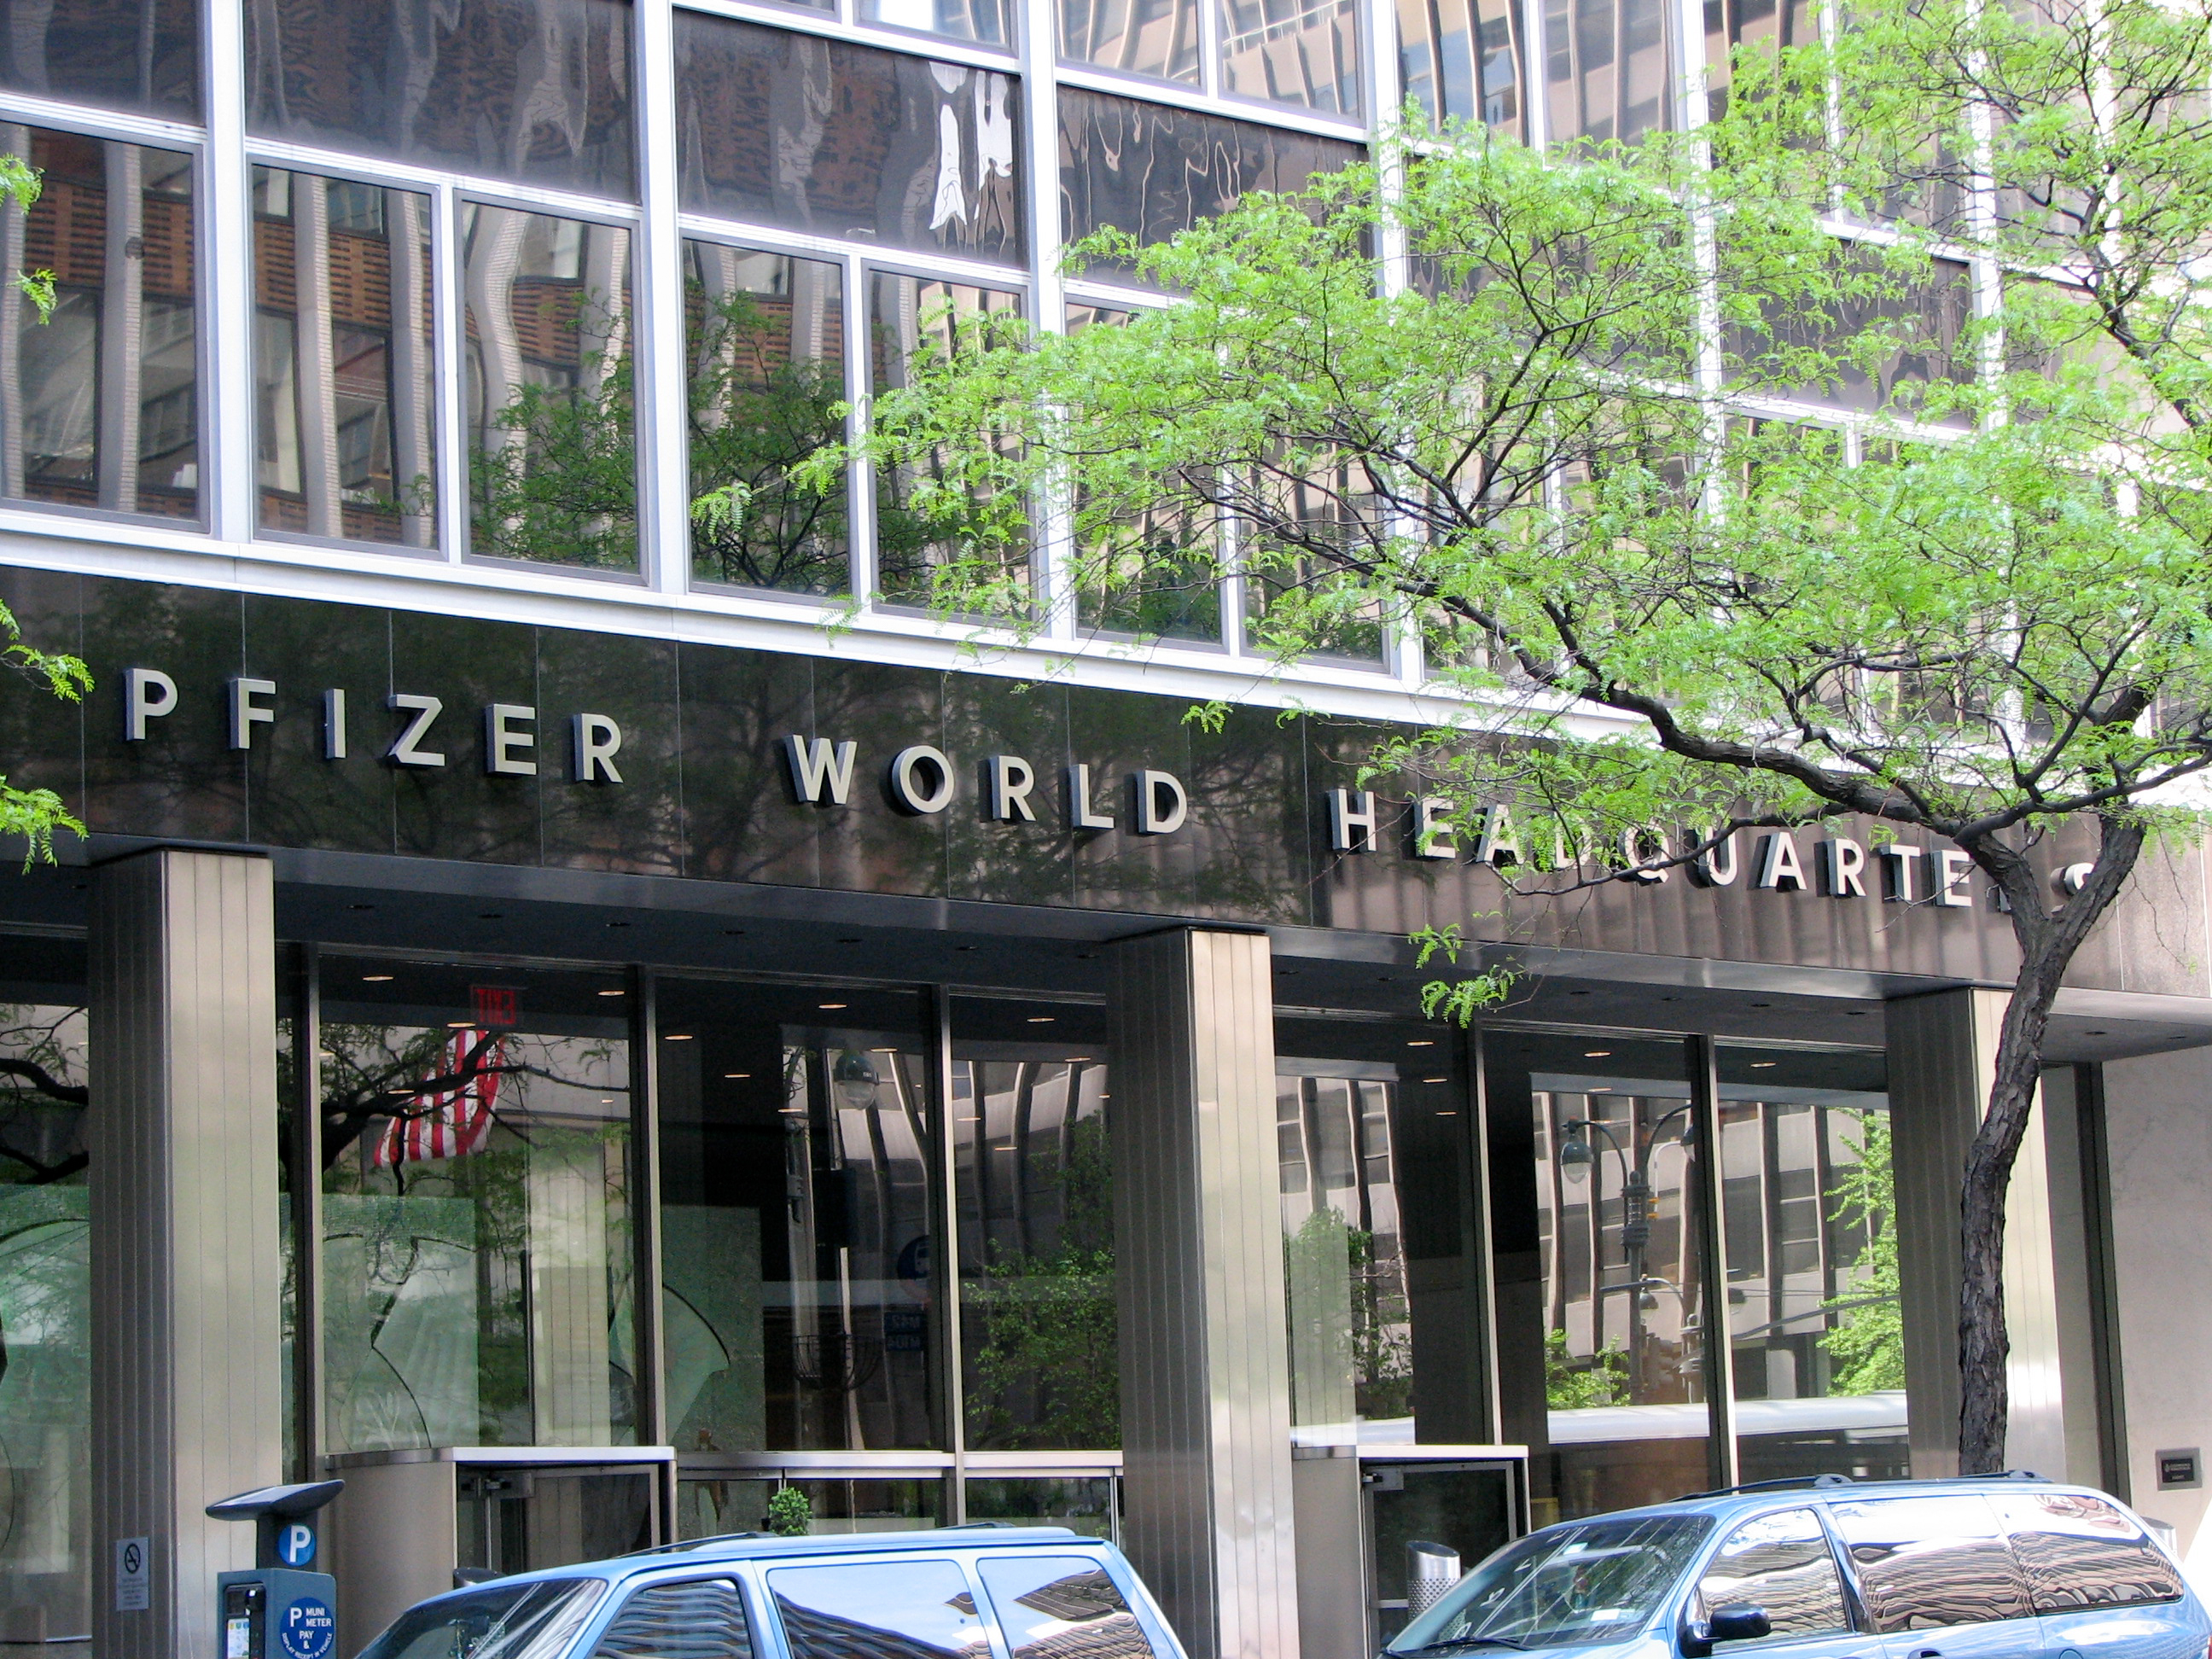 Pfizer strikes deal with Sangamo, broadening hemophilia pipeline